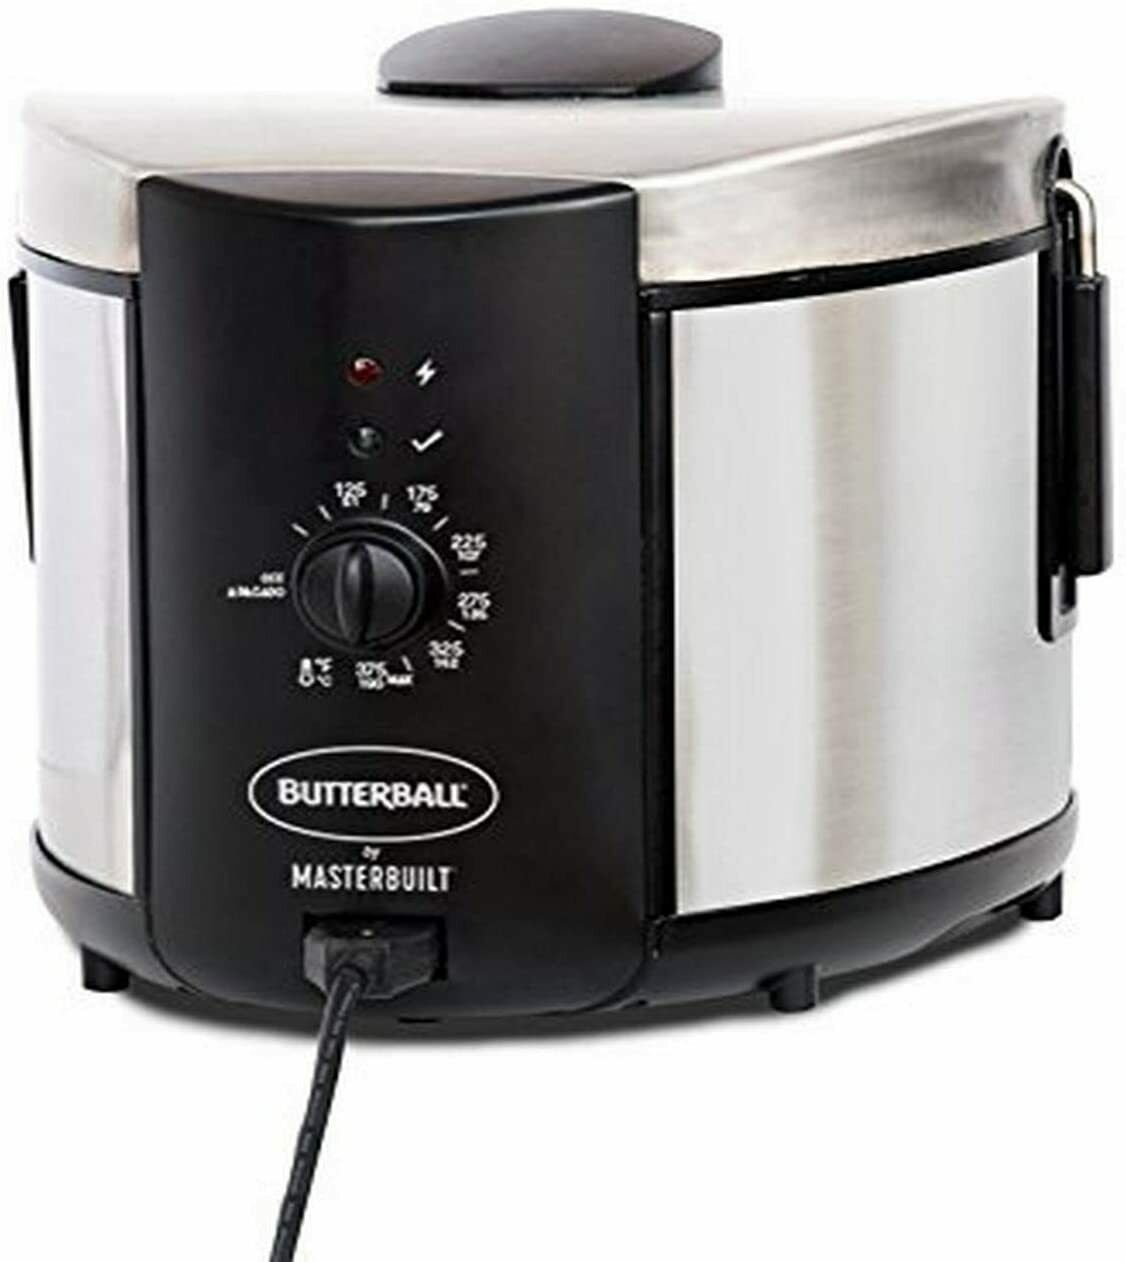 Masterbuilt Butterball MB23015018 Electric Fryer, 5 L, Stain